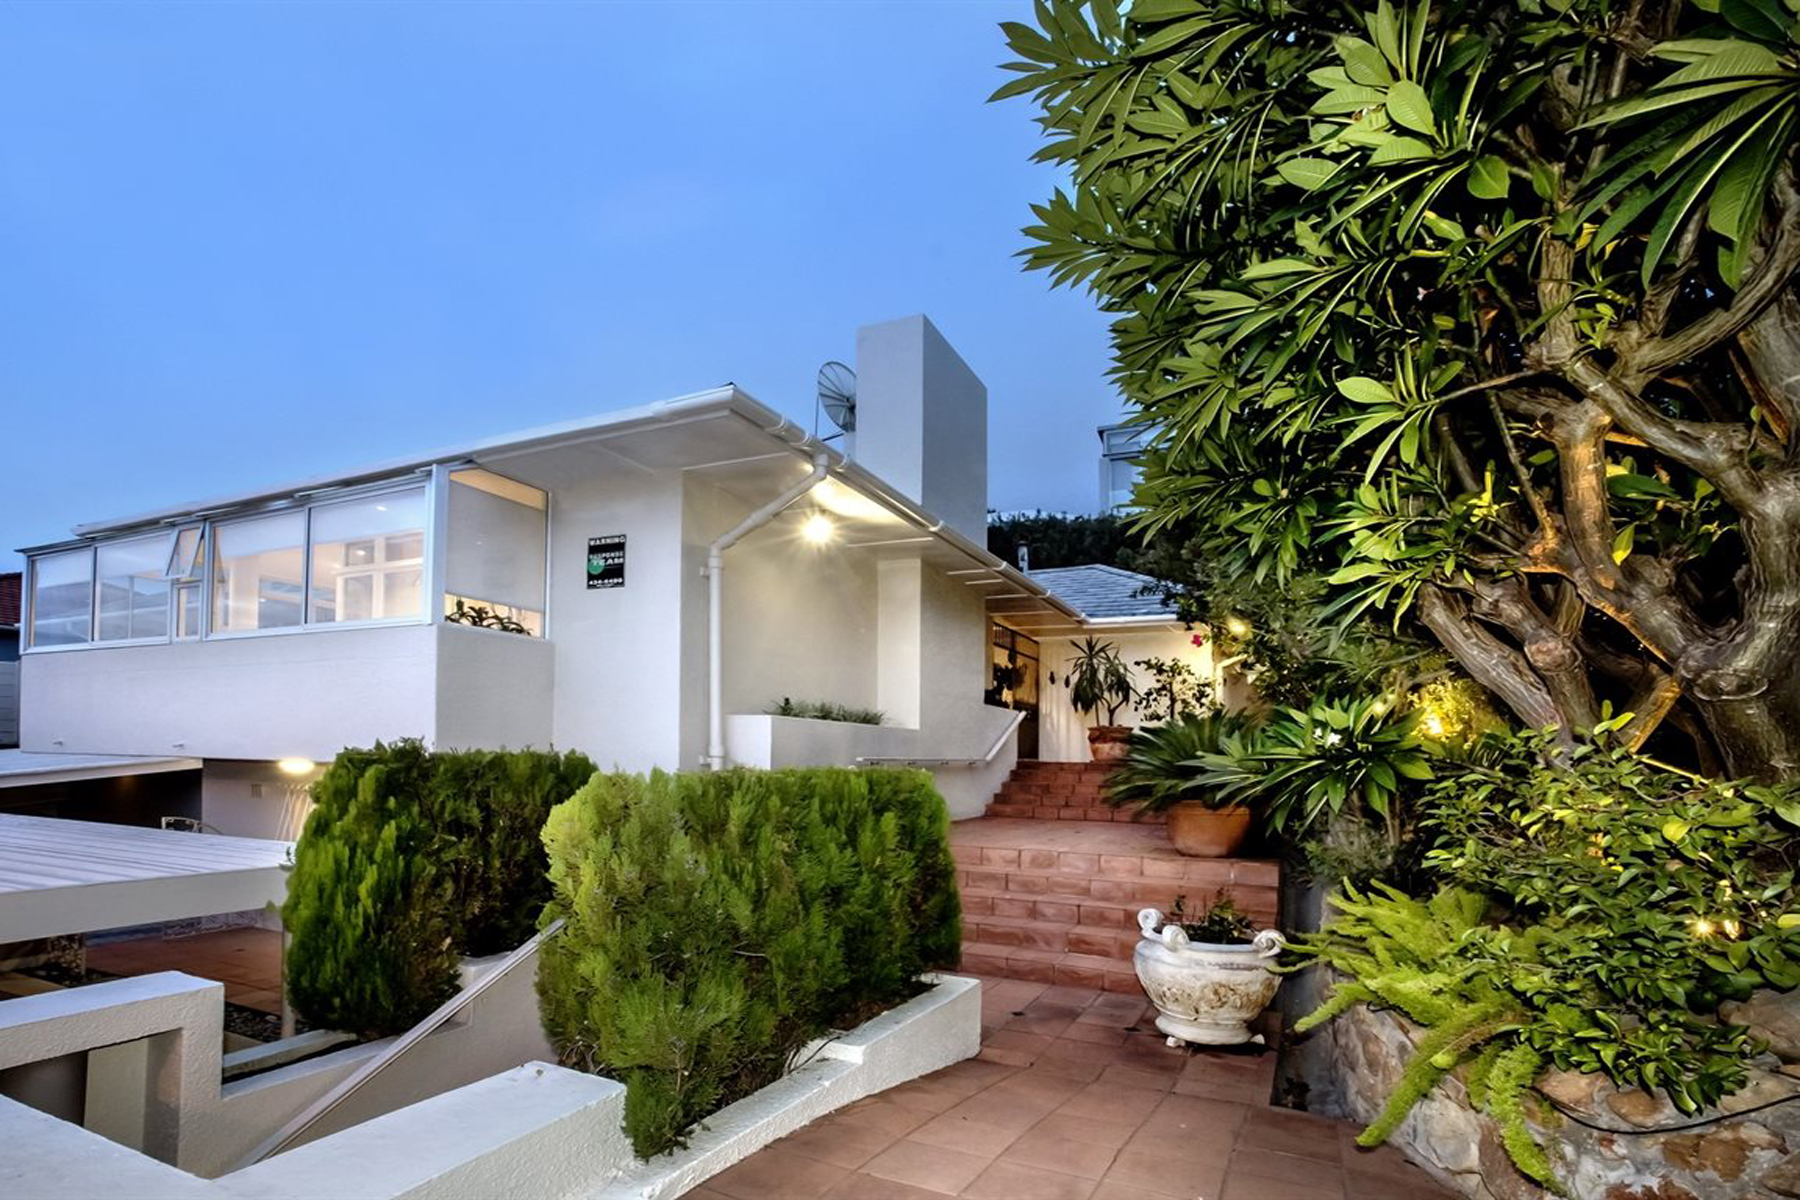 Single Family Home for Sale at Sea Point East Cape Town, Western Cape, South Africa